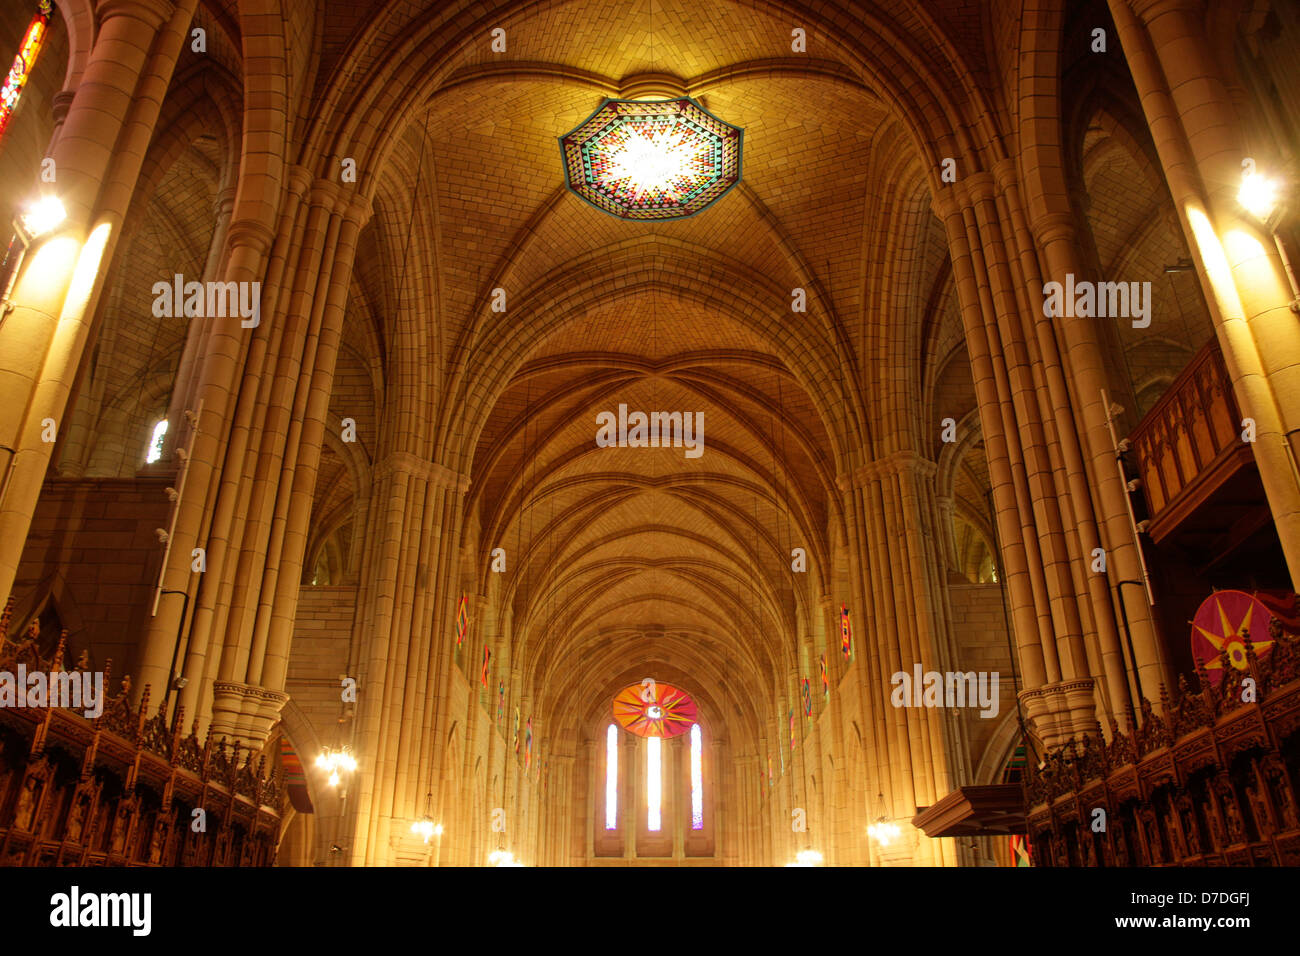 inside St. John's Cathedral in Brisbane, Queensland, Australia - Stock Image